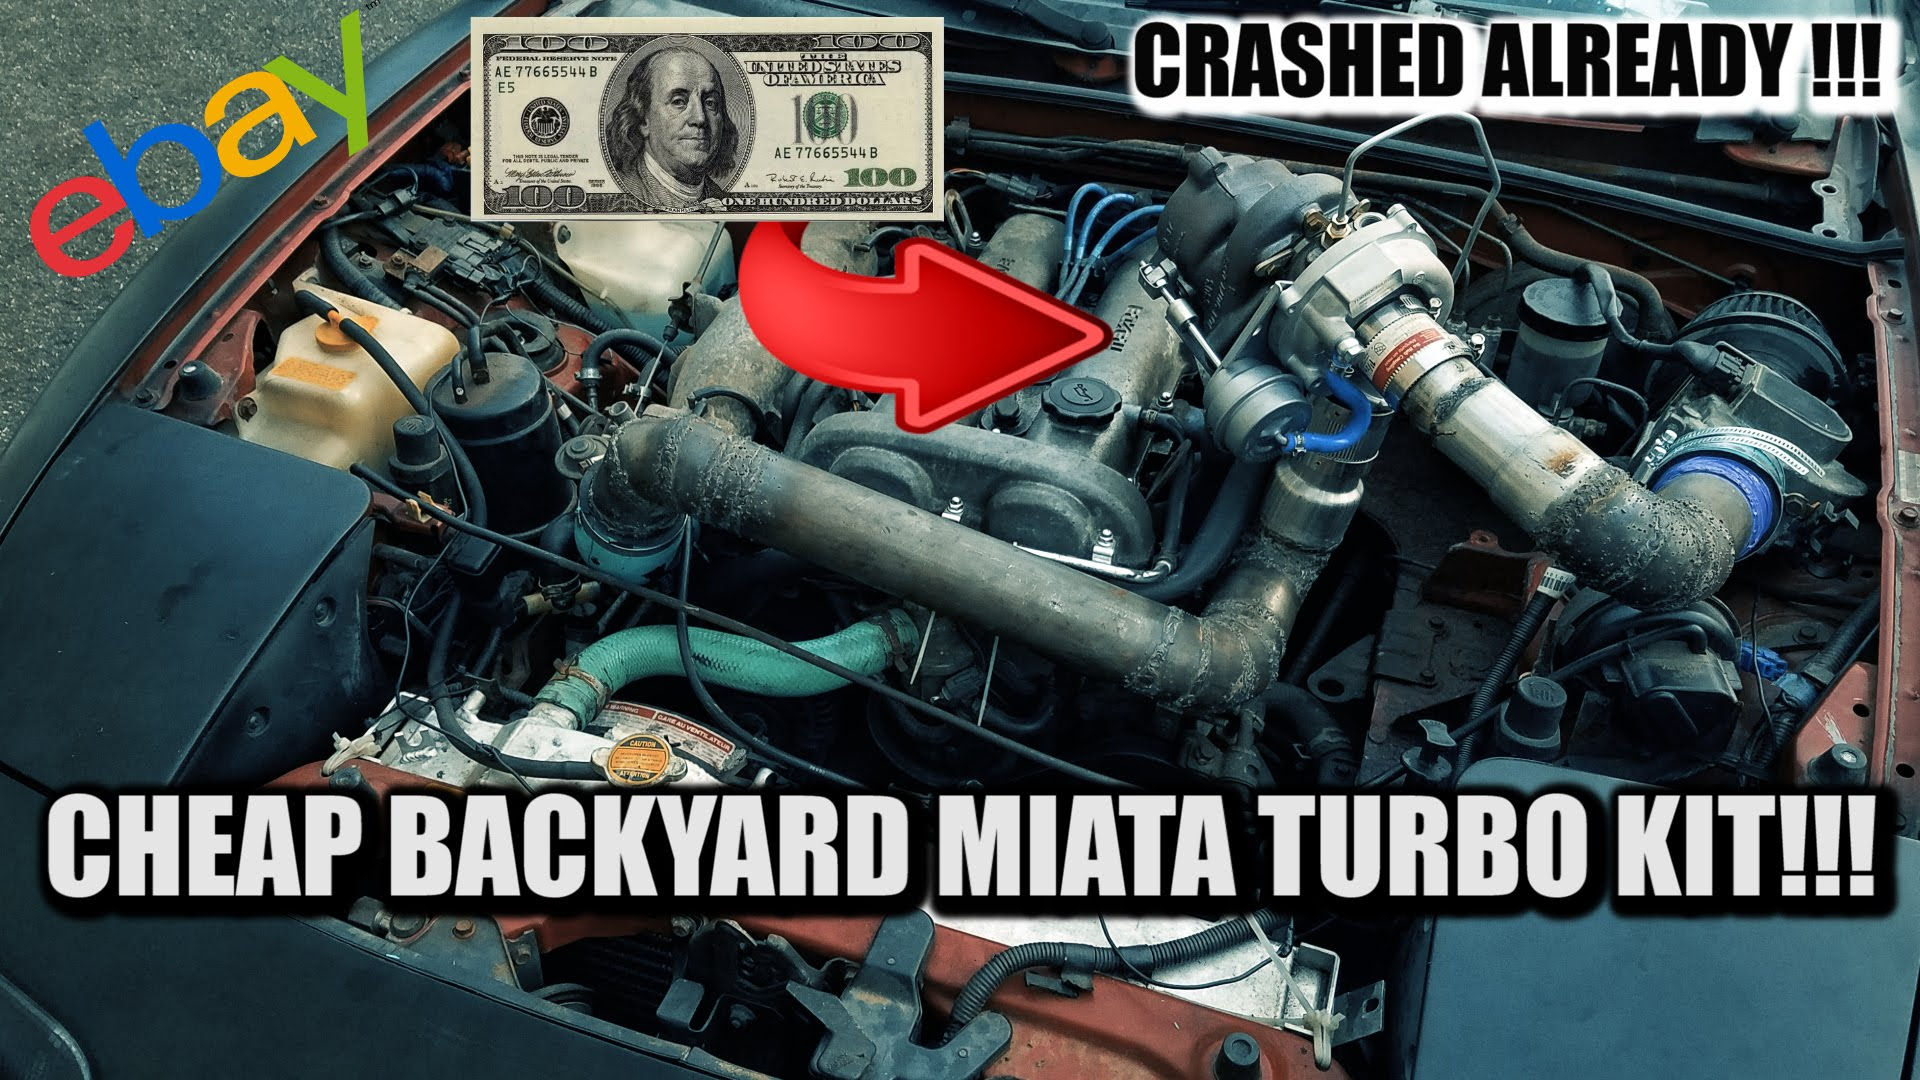 Learn How To DIY $150 Turbo Kit Into A Hard Drifting Miata, Car School Is In Session!